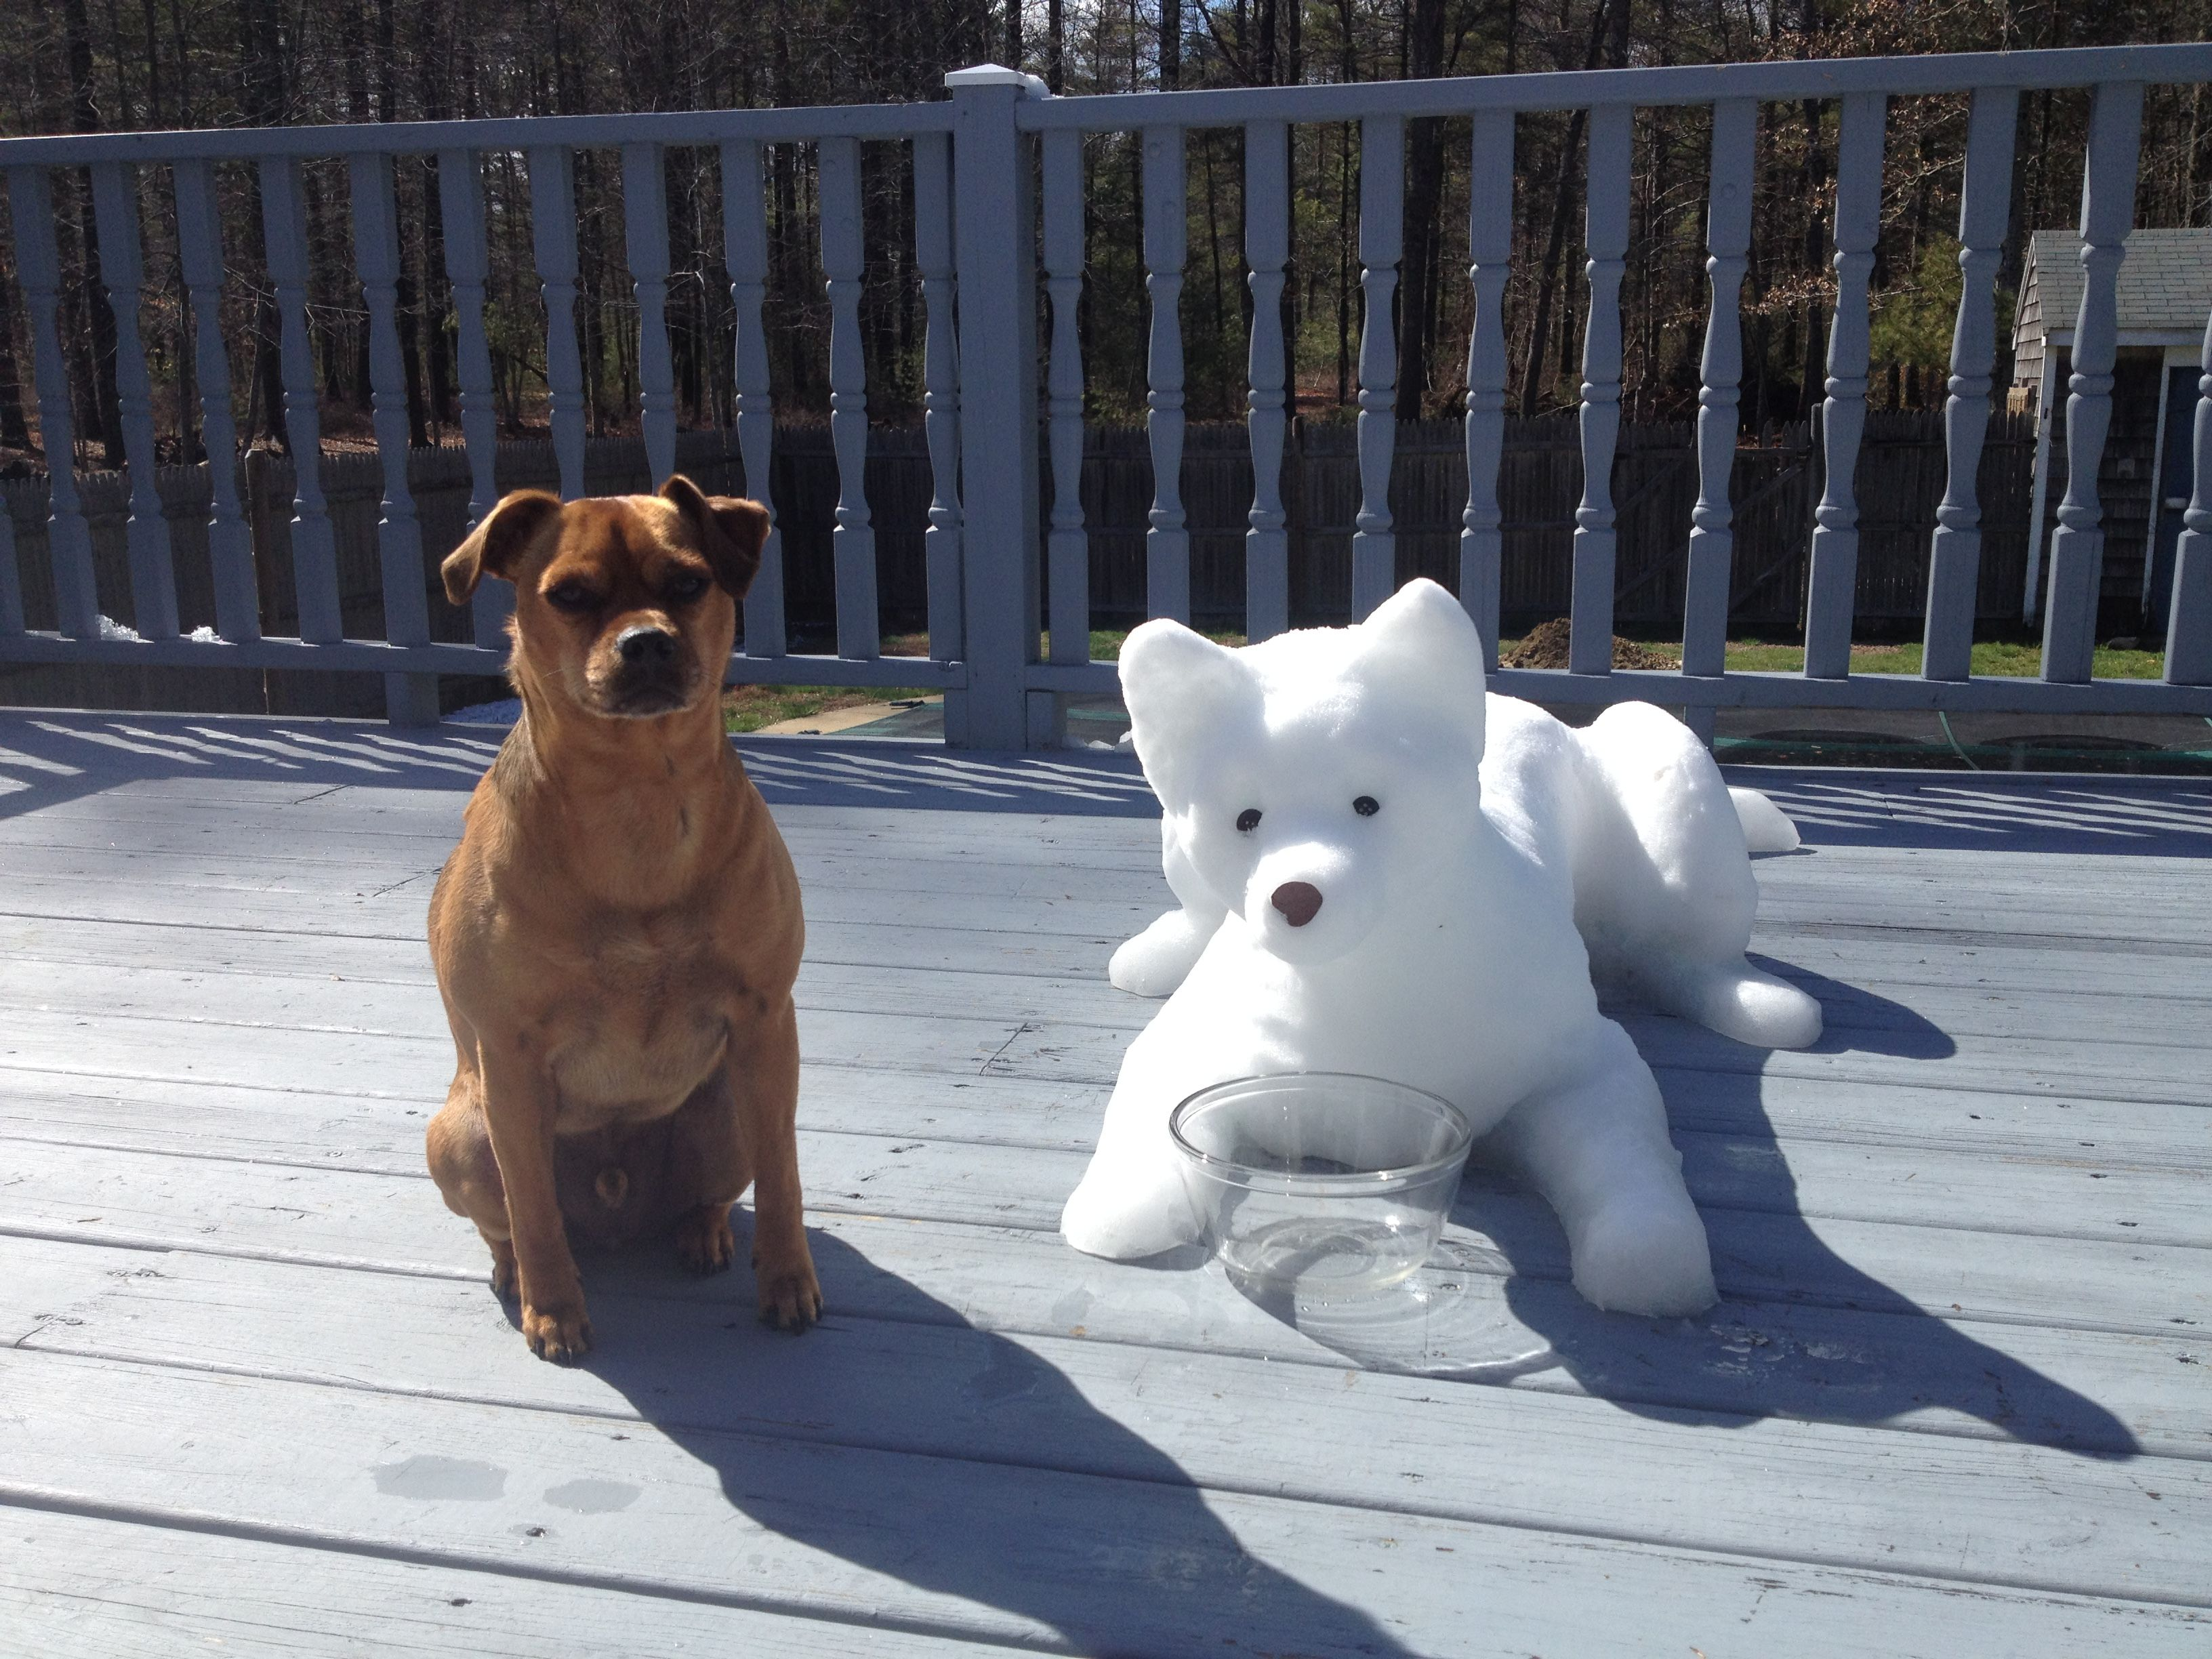 Dog Snow Sculpture By Dawn Gould With Her Dog Buddy Snow Dogs